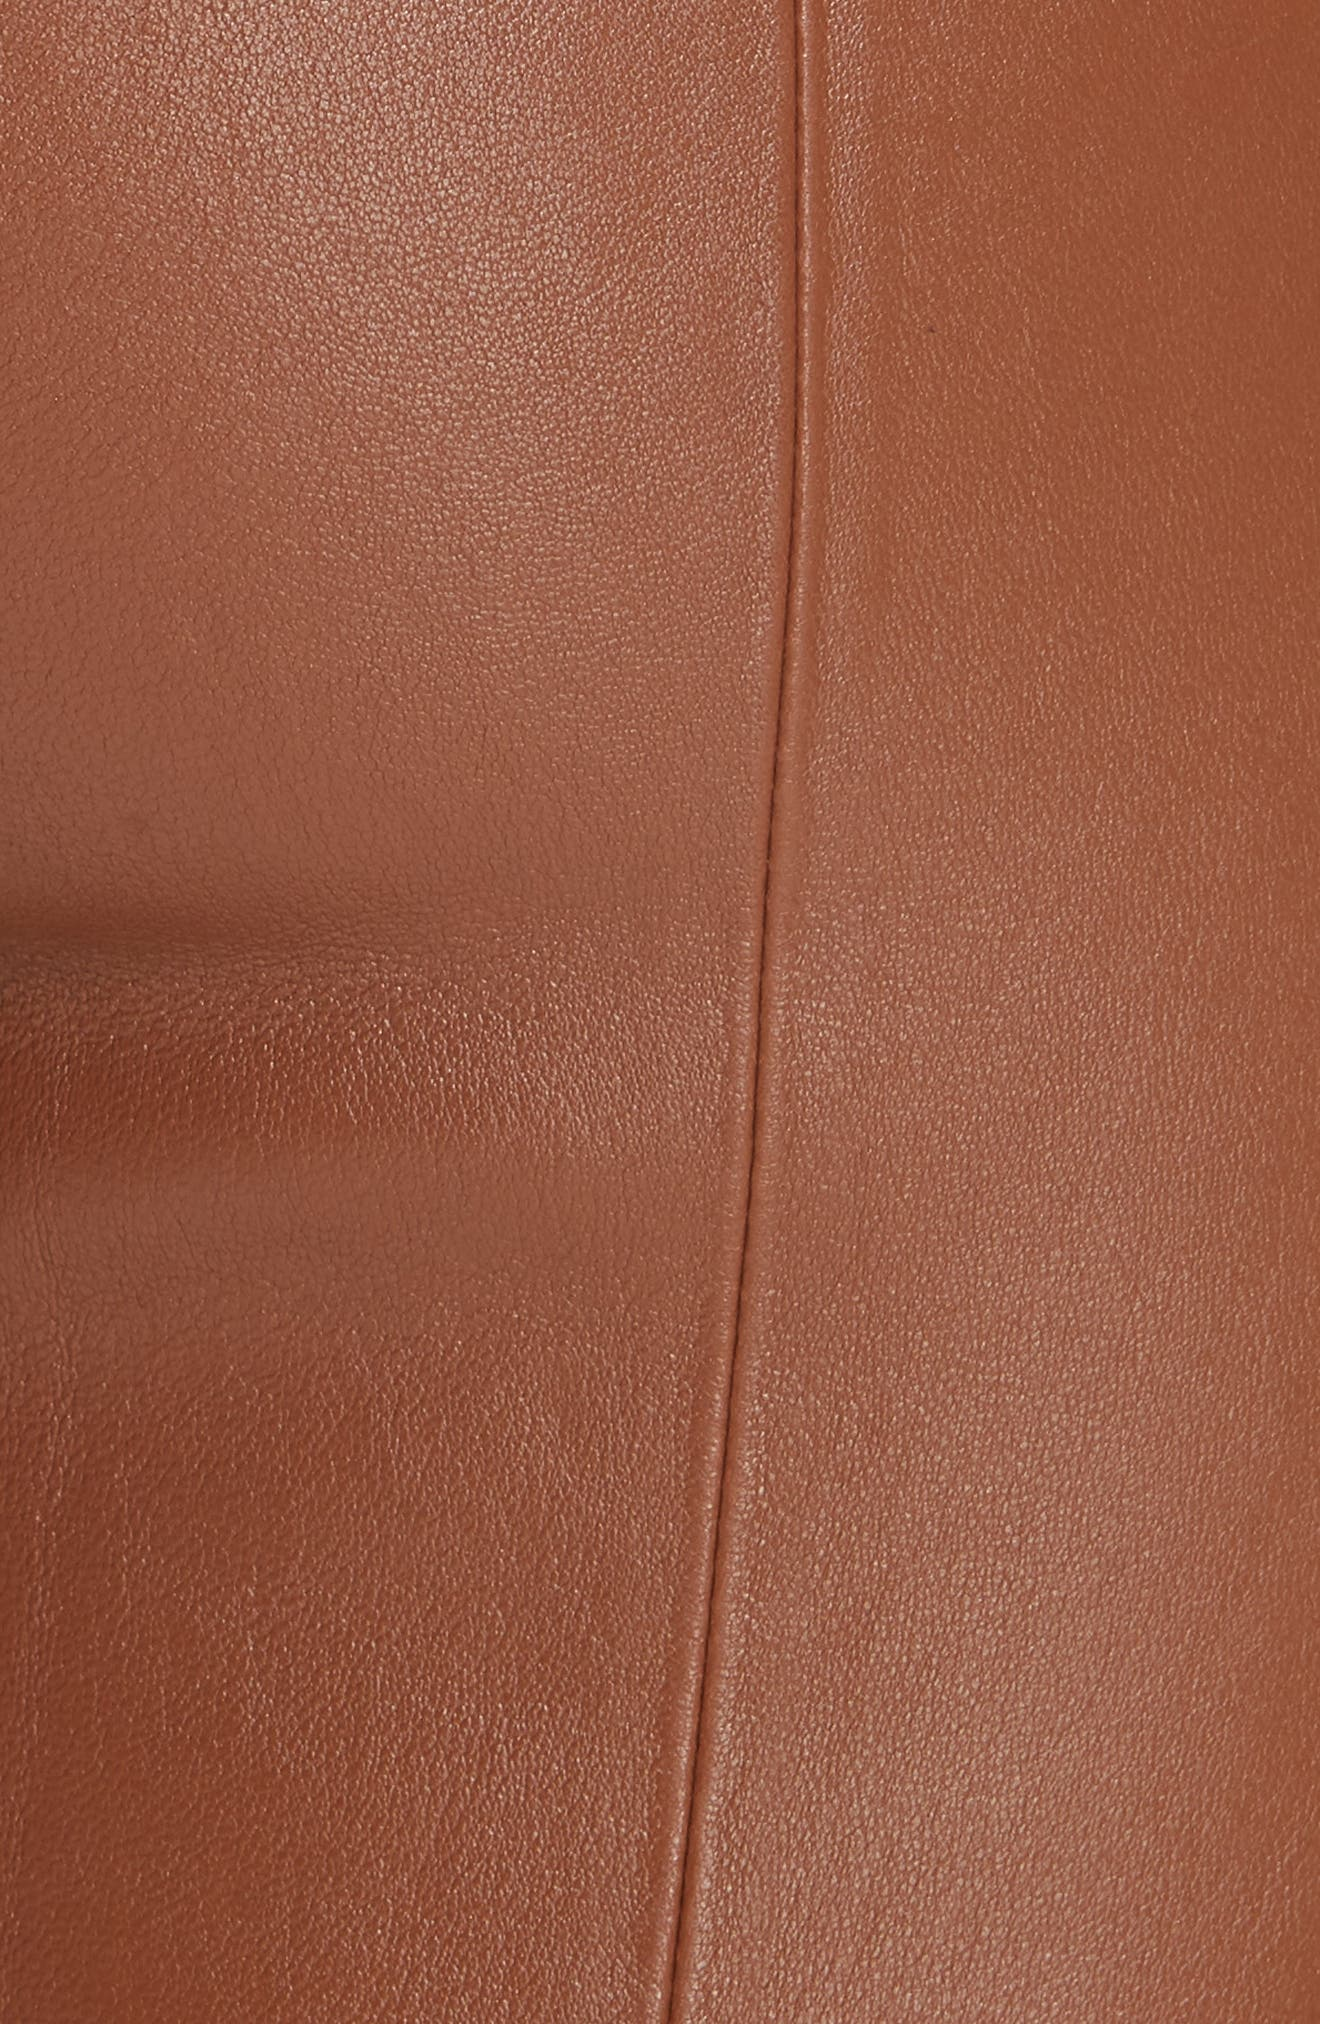 Mercer Nappa Leather Pants,                             Alternate thumbnail 5, color,                             VICUNA